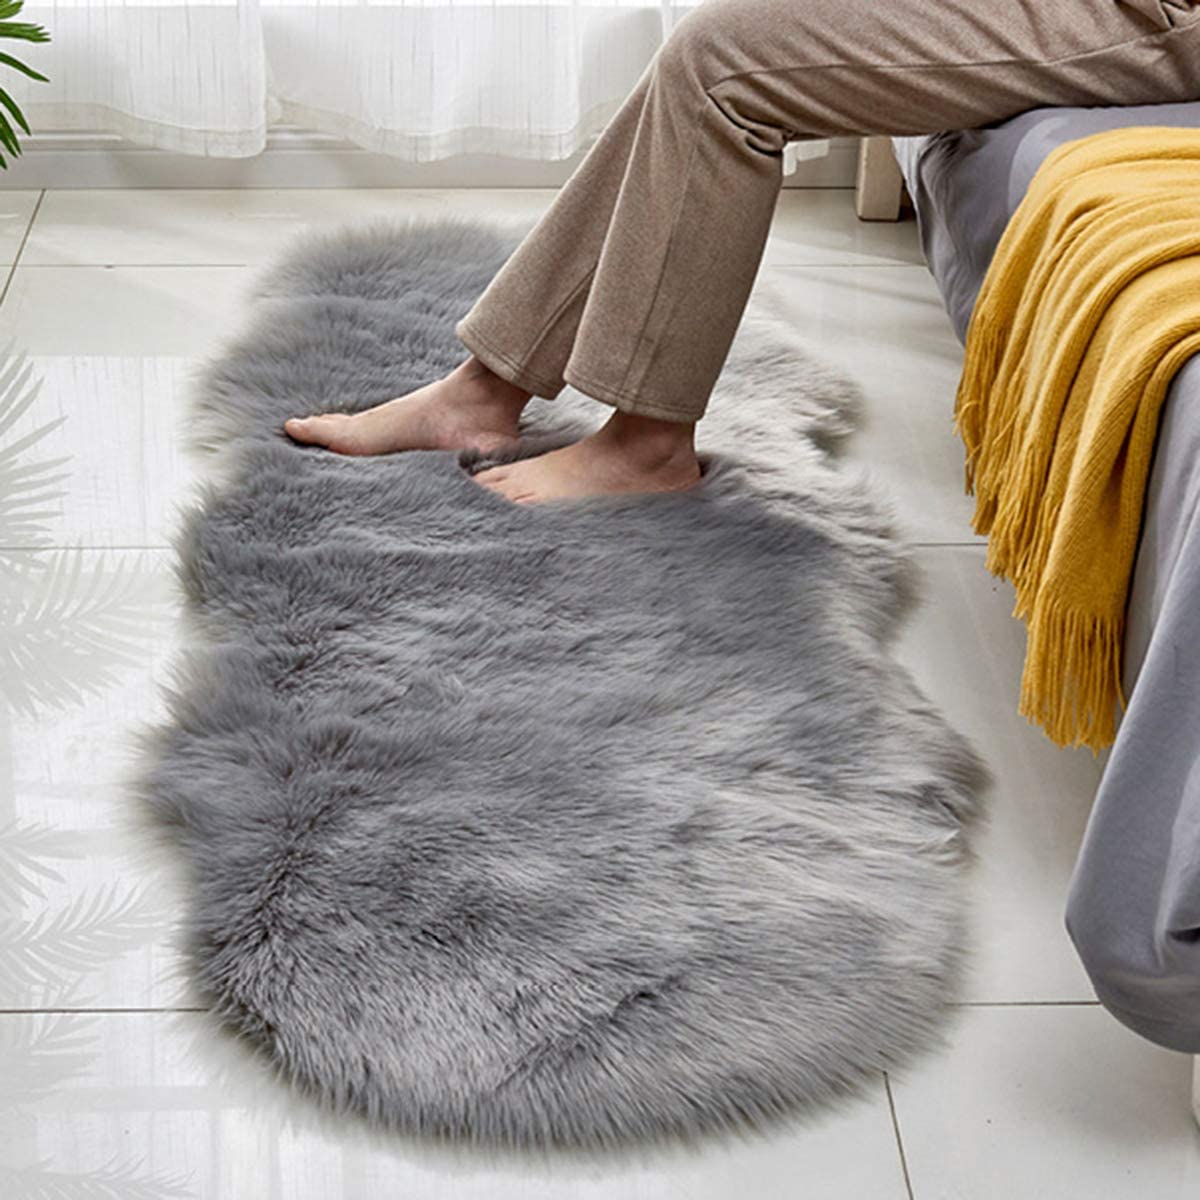 Faux Sheepskin Plush Area Rug, 2x6 feet Anti-Slip Fluffy Rug for Bedroom, Warm Faux Fur Couch Cover for Sofa and Bay Window(Grey)